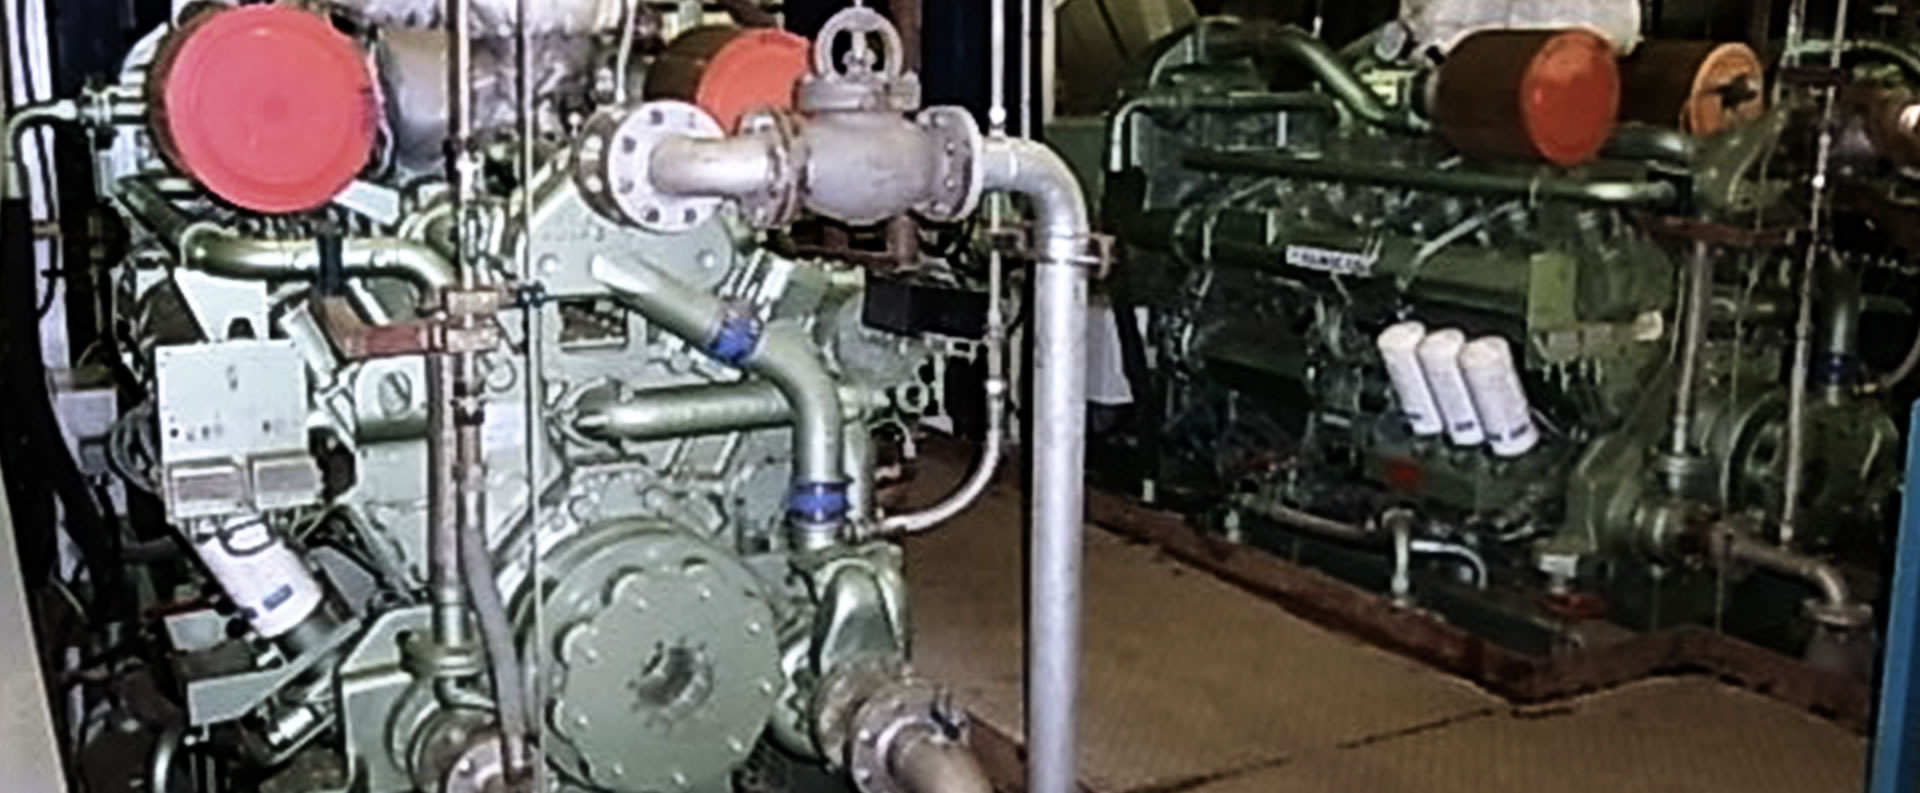 Supply, Installation and Commissioning of Marine and Industrial Generating Sets